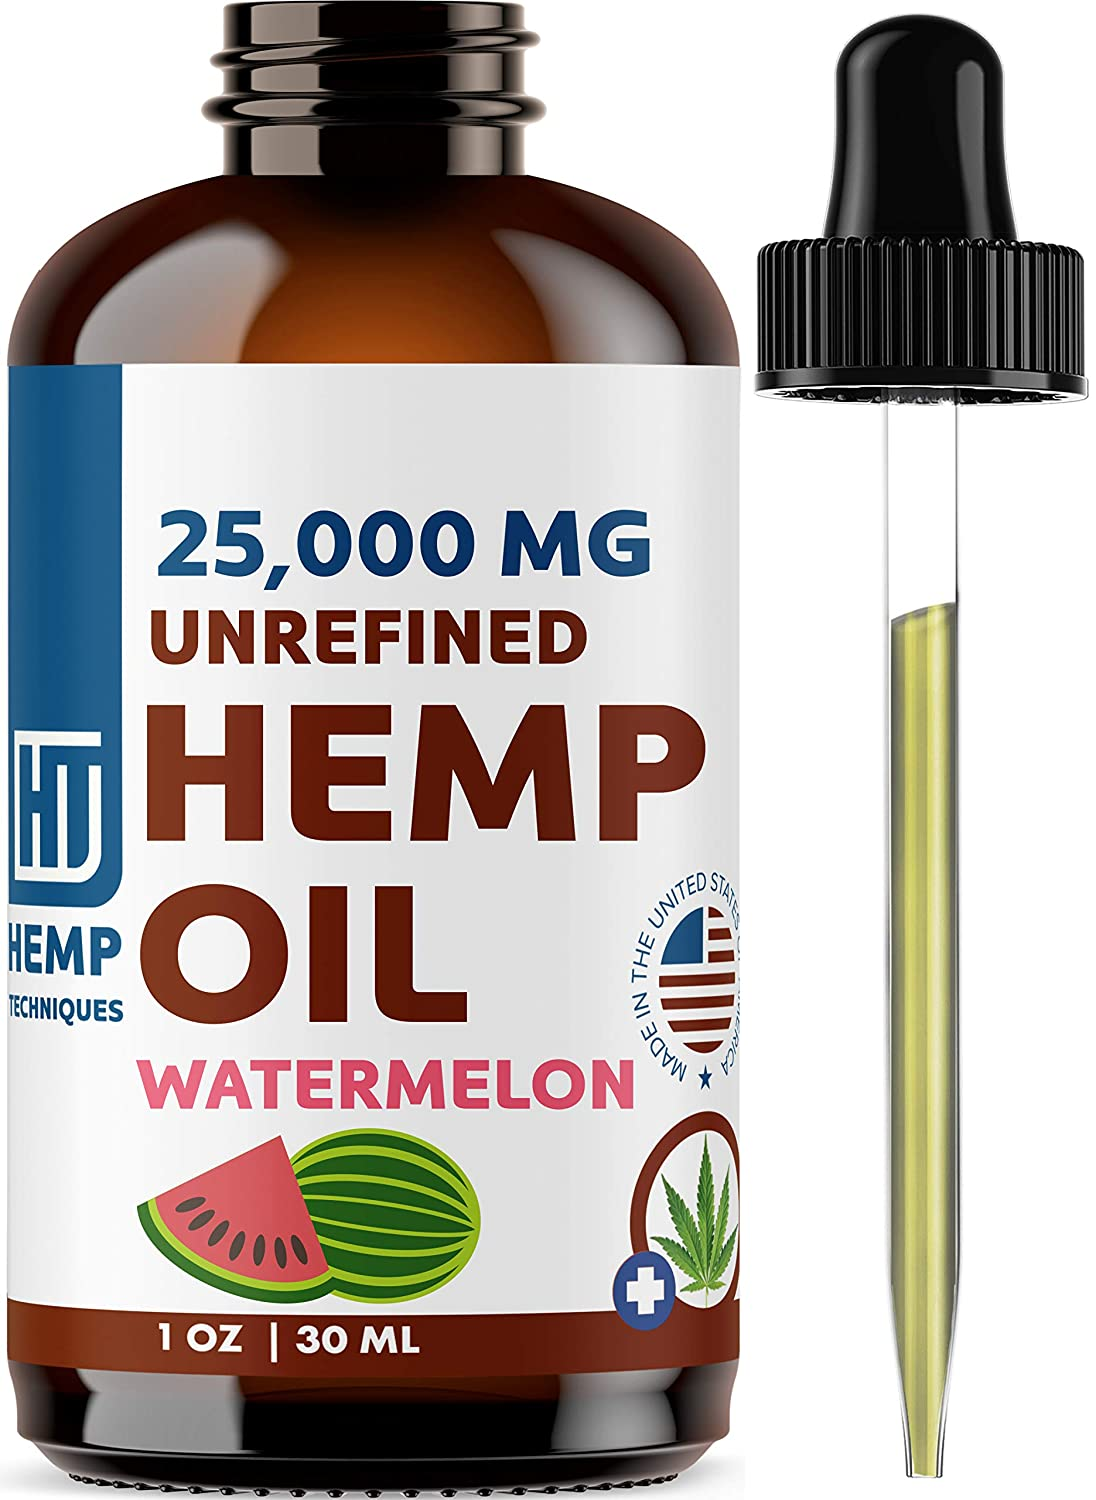 Hemp Oil Watermelon 25,000 MG - Natural Extract for Pain, Anxiety and Stress | Omega 3&6 Fatty Acids Rich | Better Sleep | Great for Skin | Vegan Friendly | Organic